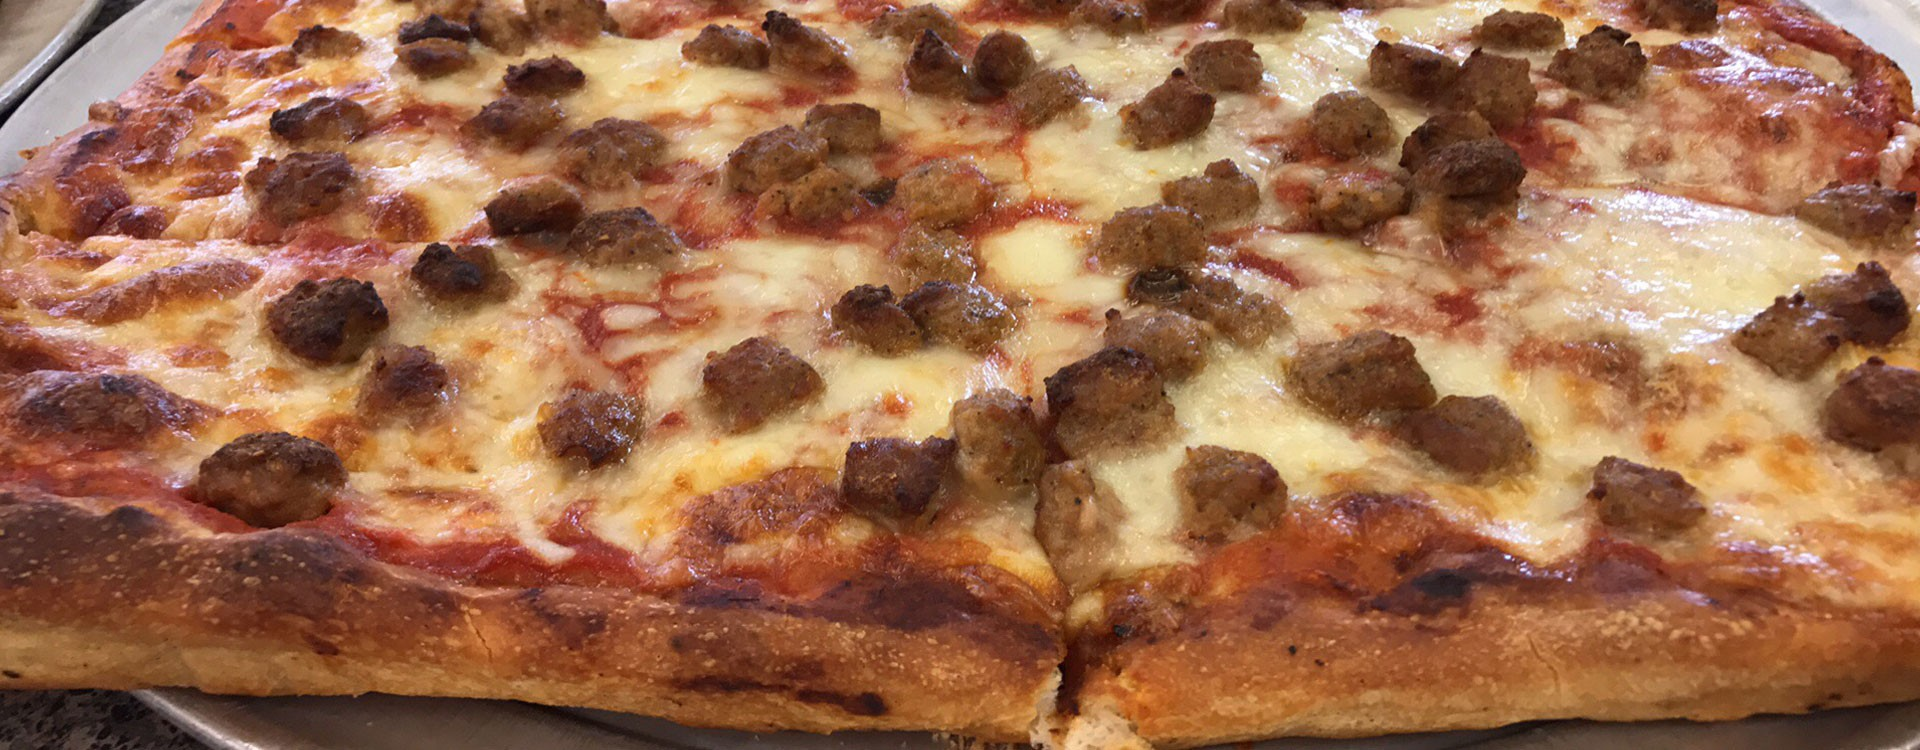 meatballpizza